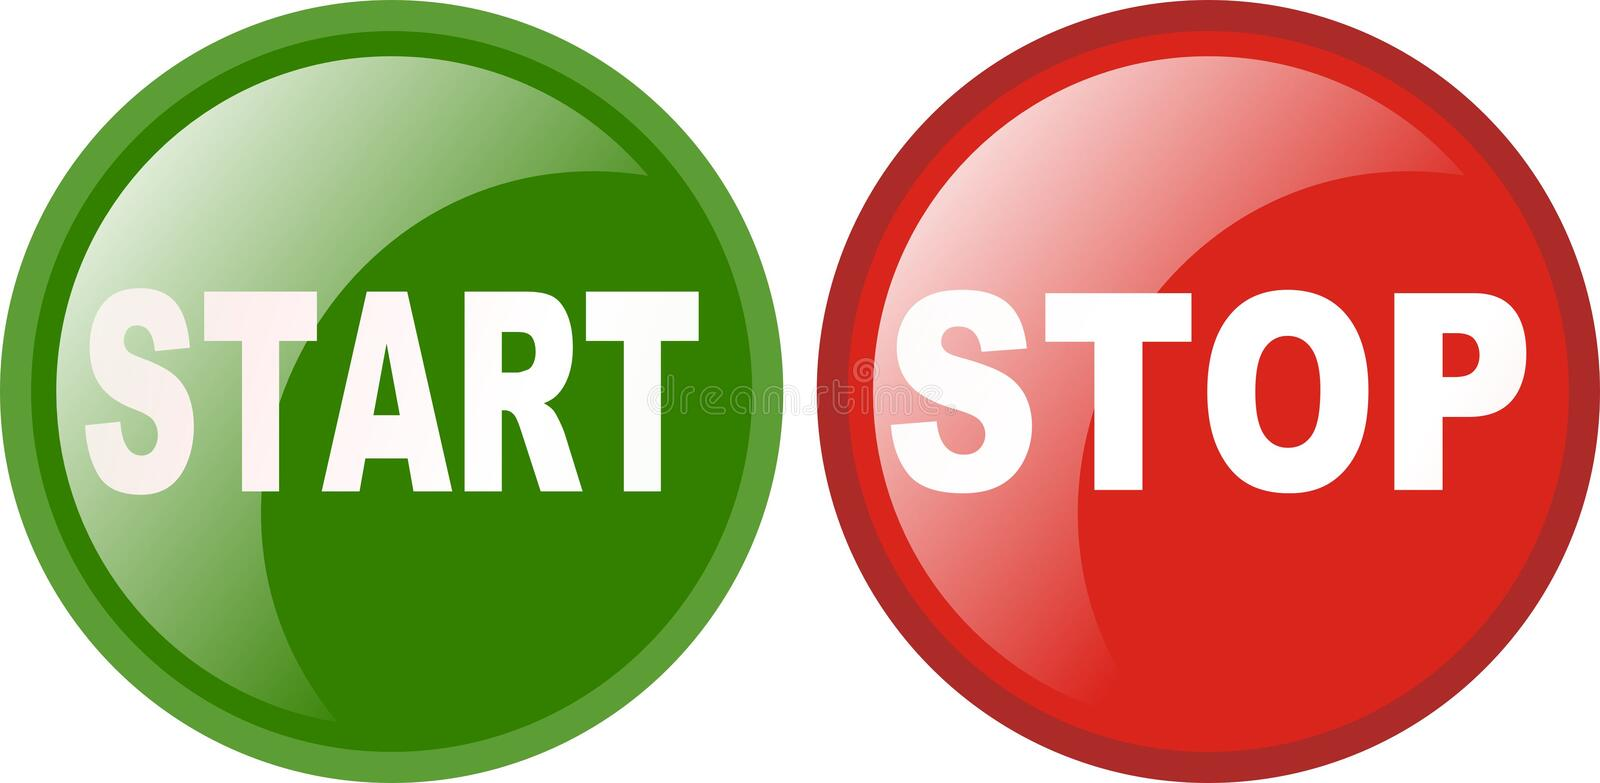 Start stop sign royalty free illustration